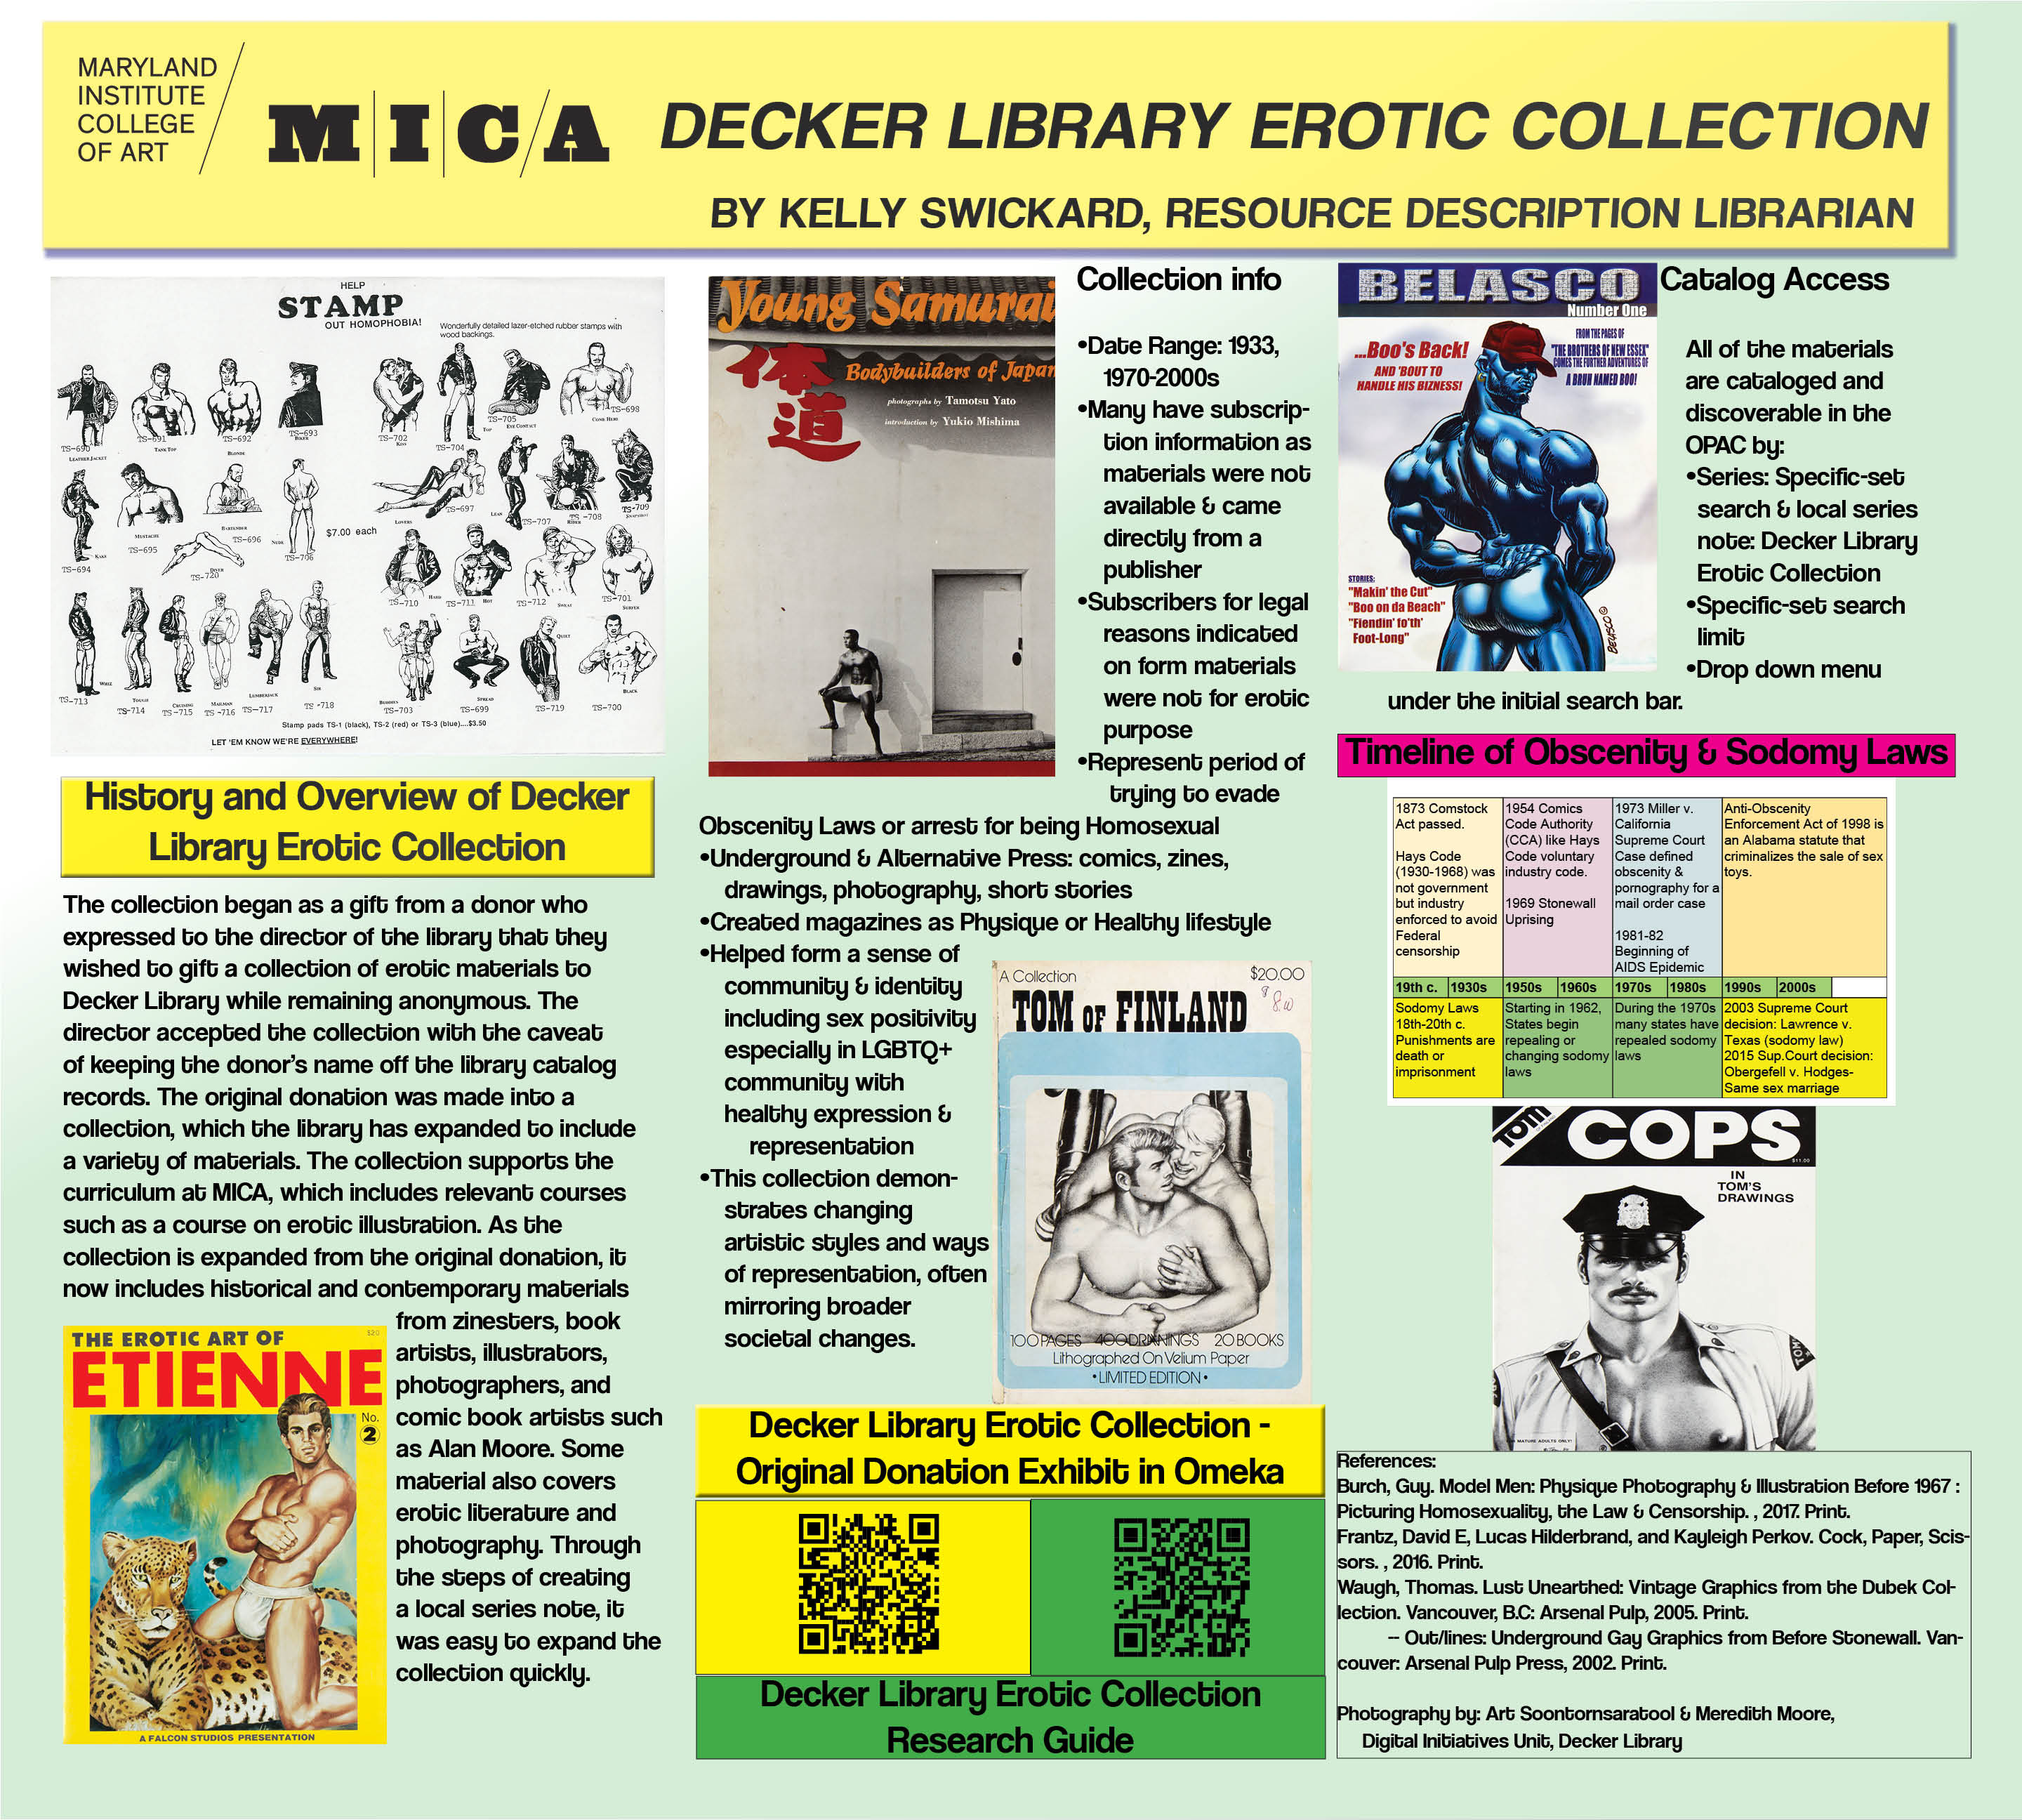 Decker Library Erotic Collection poster session